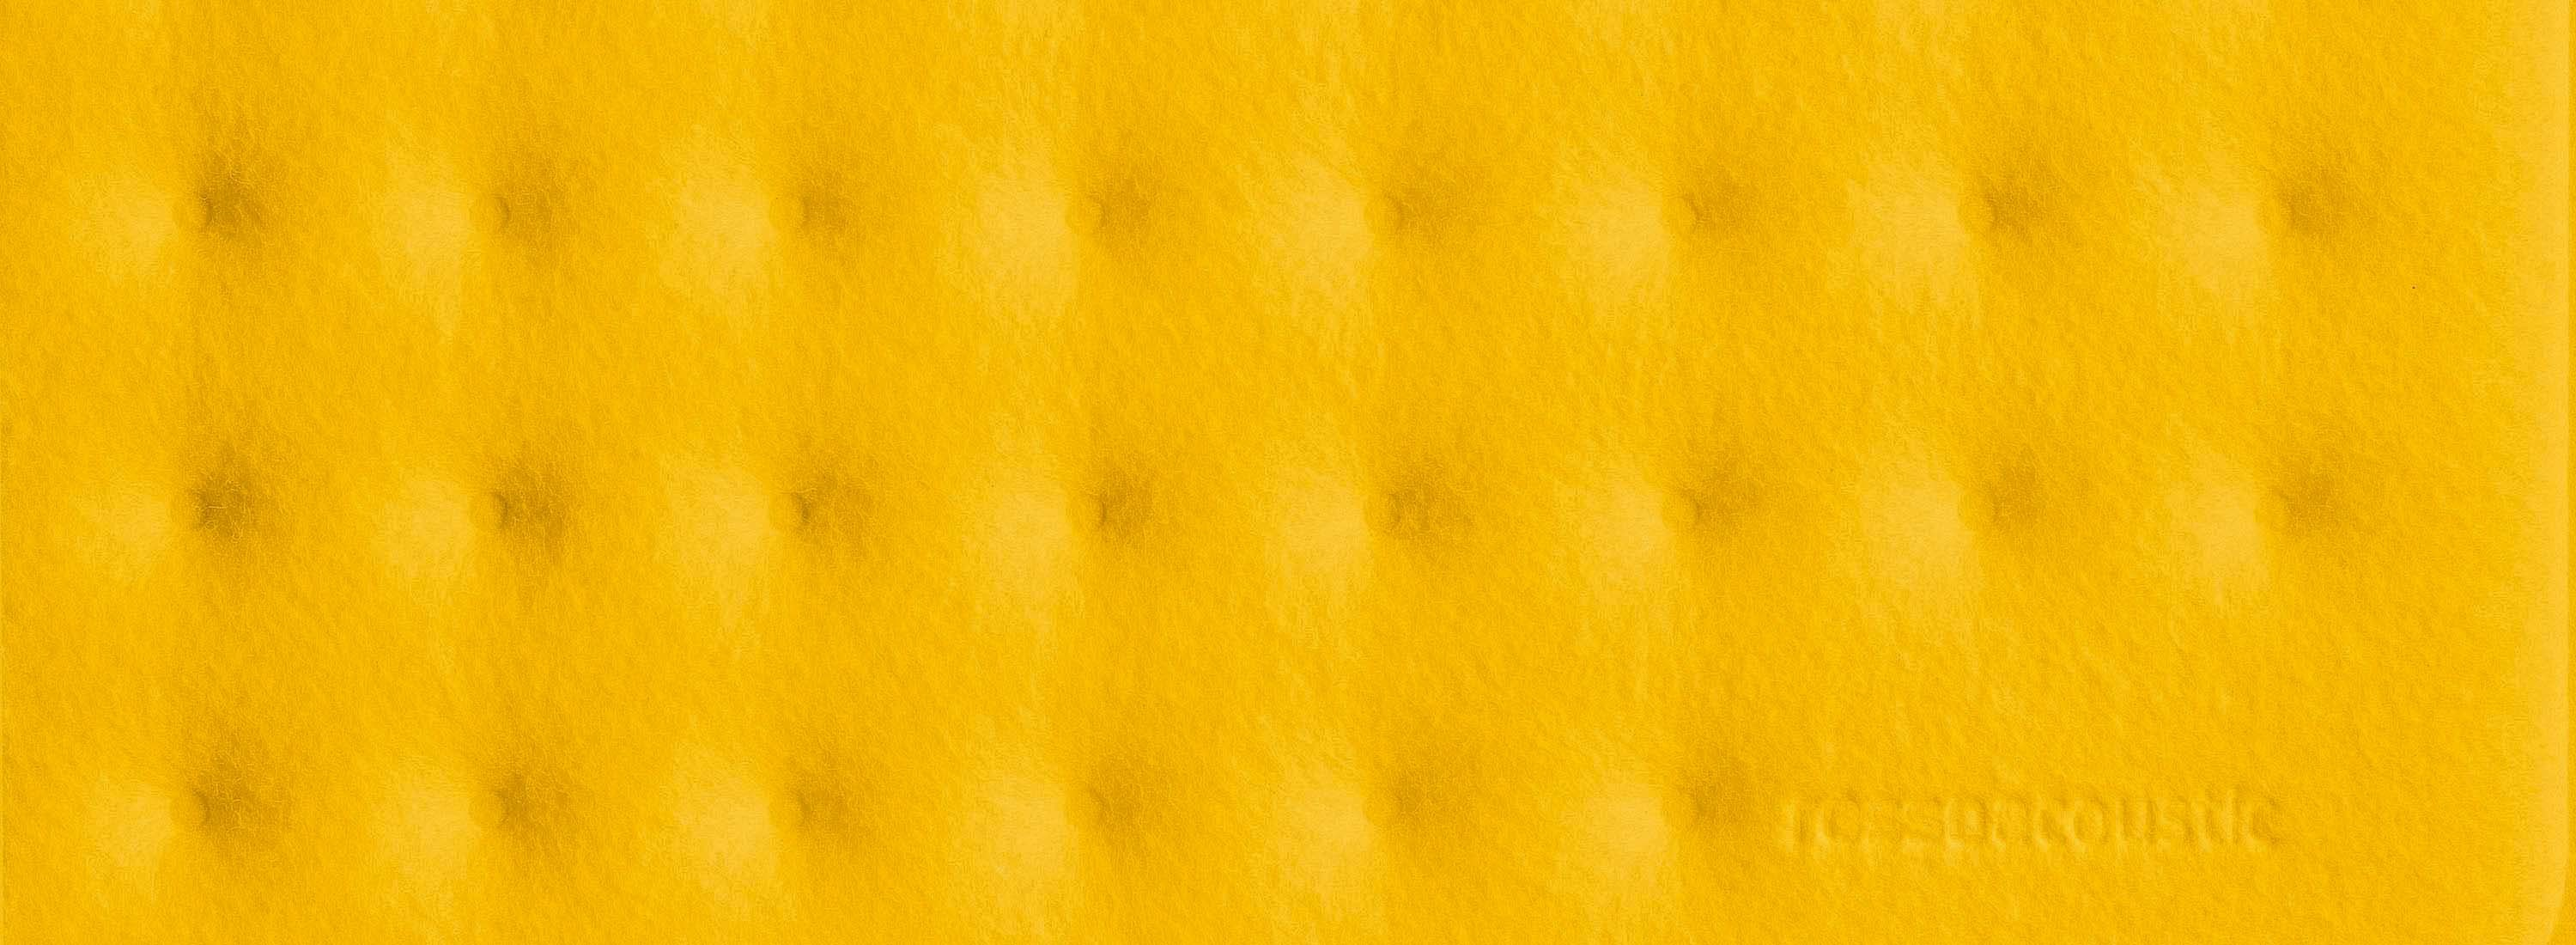 Rossoacoustic PAD R 600 Basic, Ø696 x 25 mm, yellow field